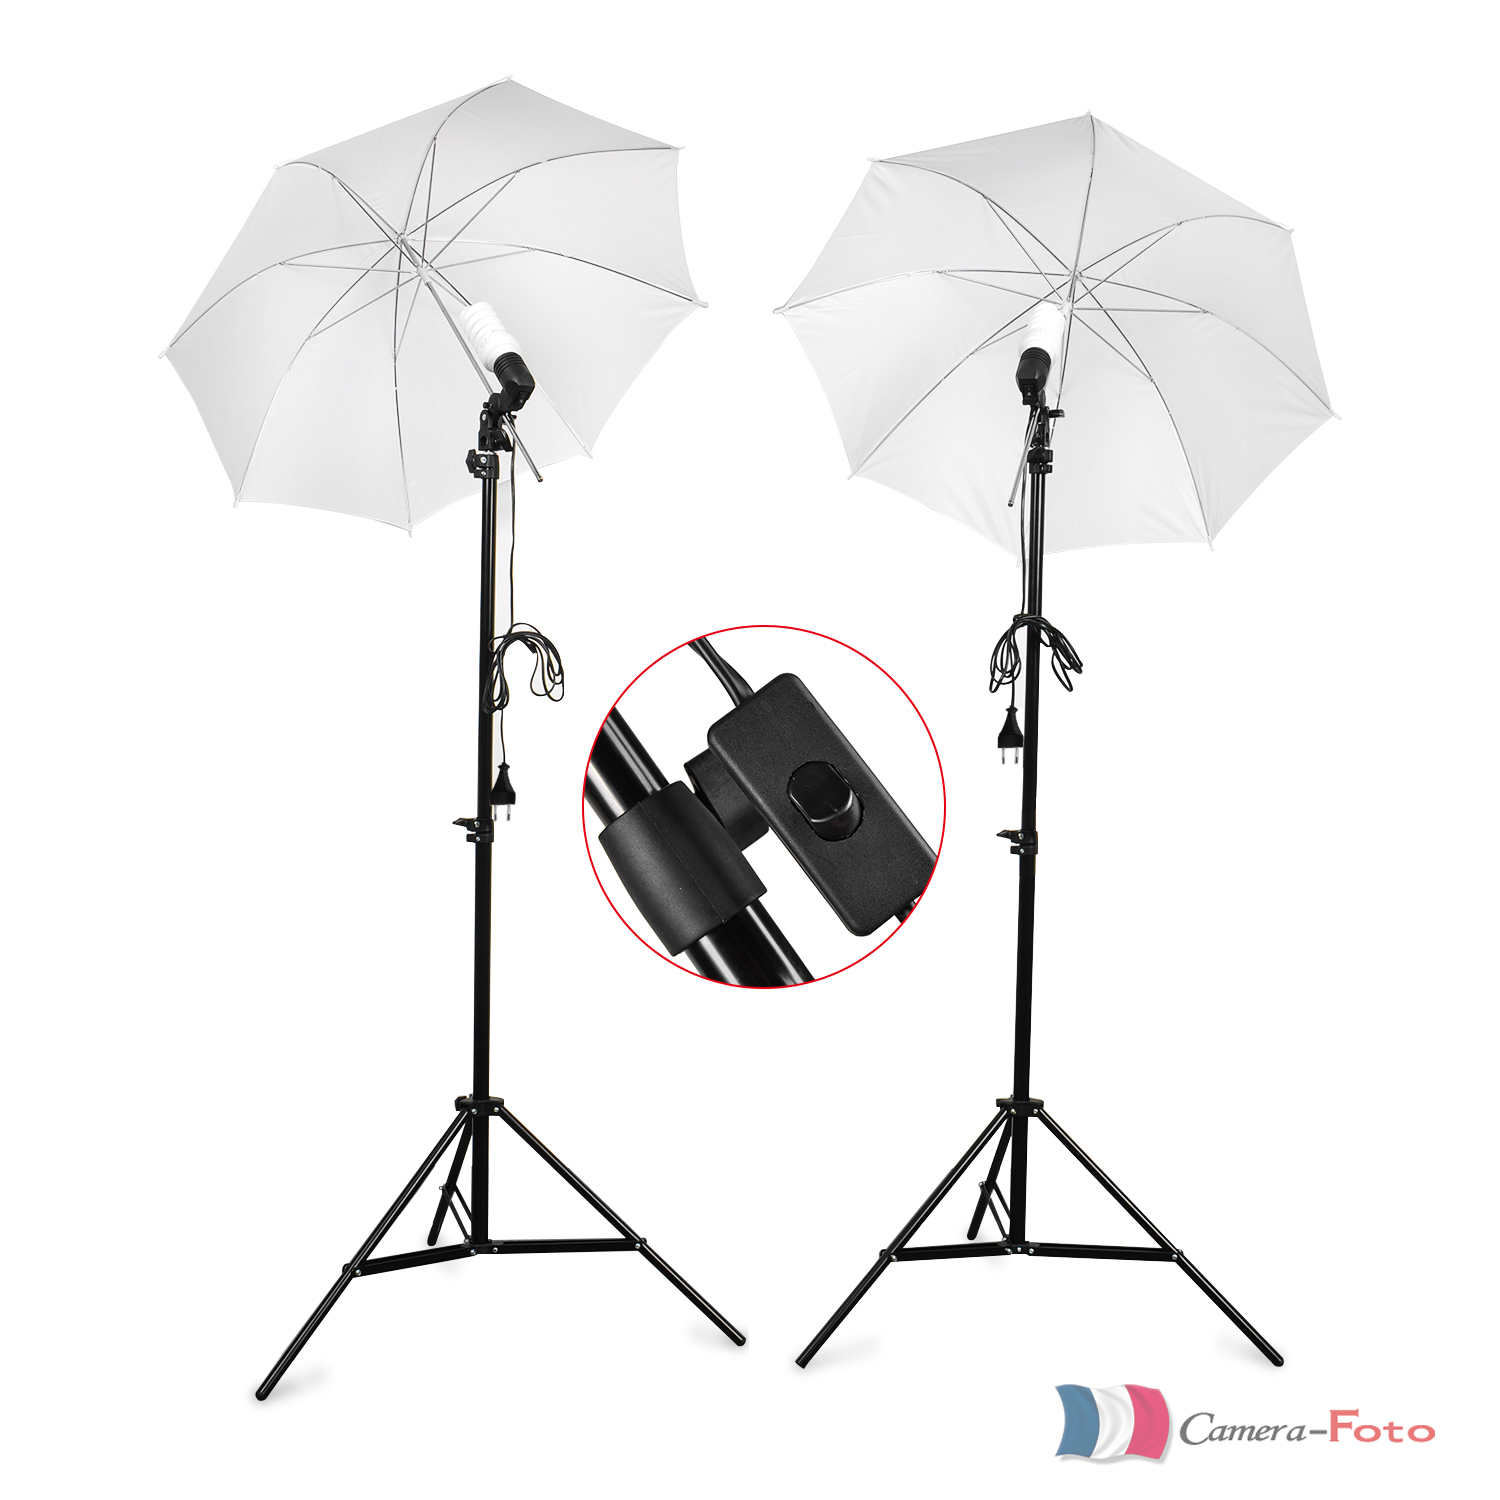 bps photo studio parapluie photographique continue kit lumi re lampe ampoule ebay. Black Bedroom Furniture Sets. Home Design Ideas